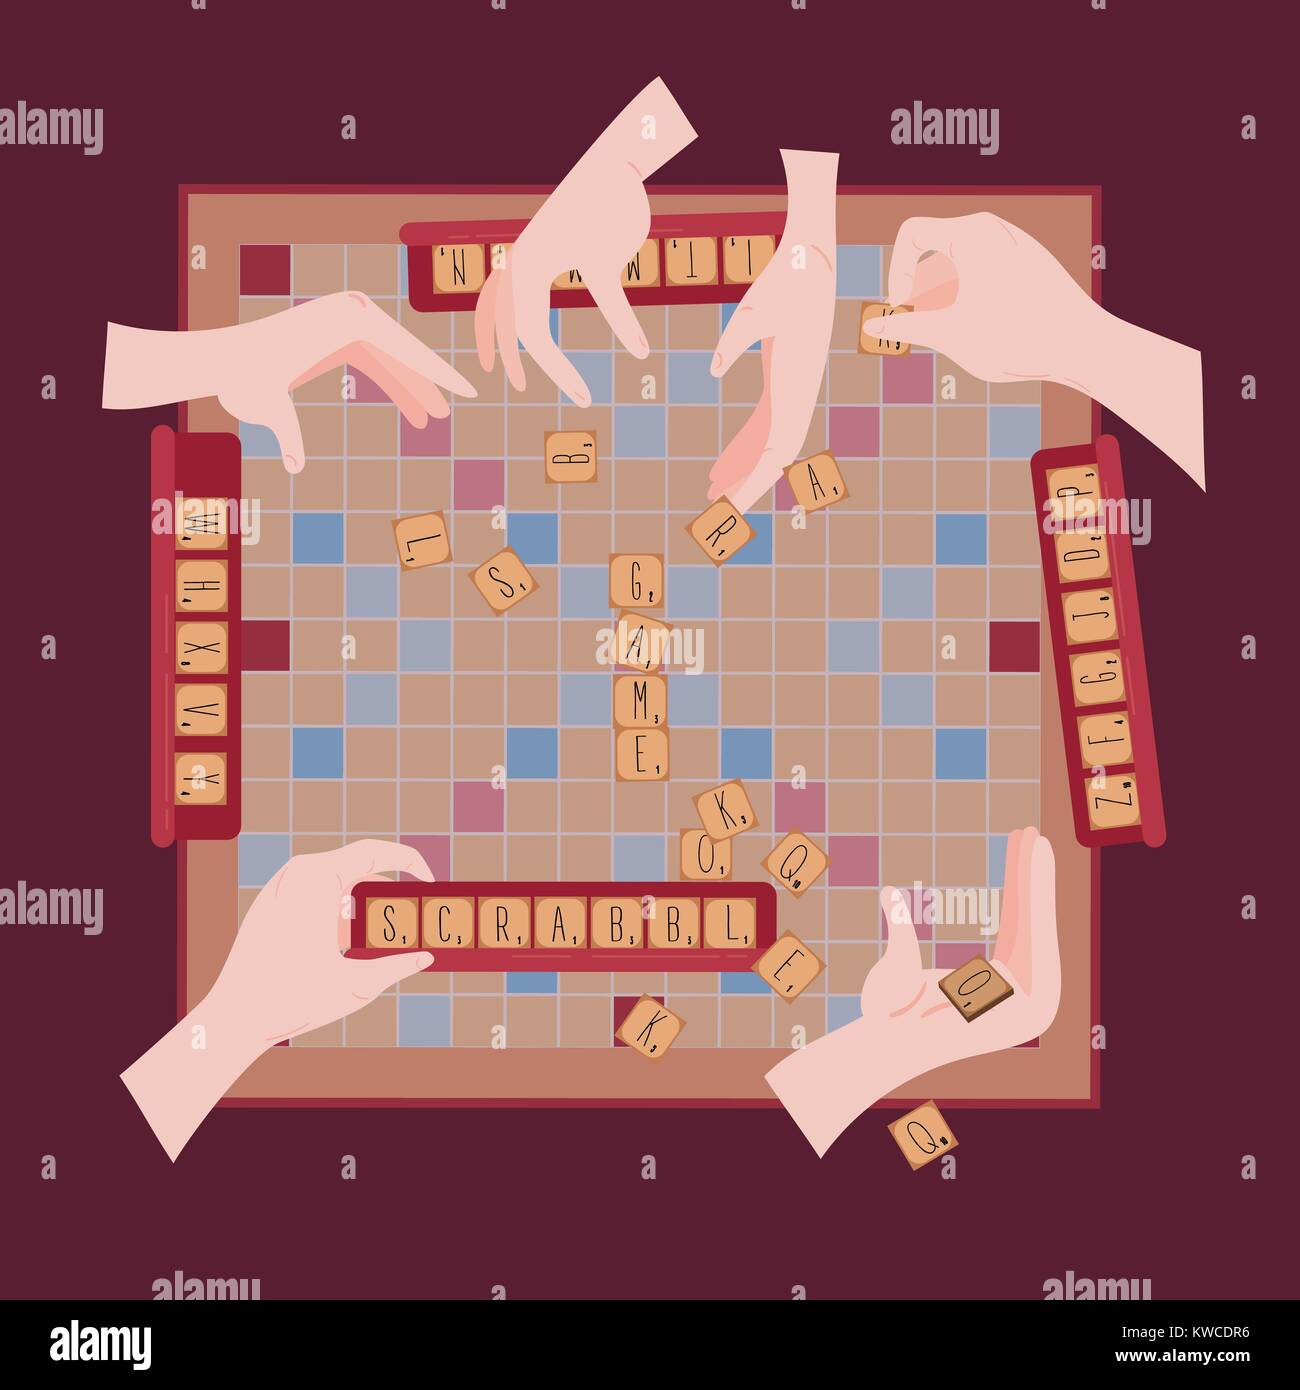 Board Table Wooden Game For Kids And Adult. Making Scrabble Words From Tile  Letters. Hands With Pieces. Entertatinment For Everybody. Toy For Eruditio